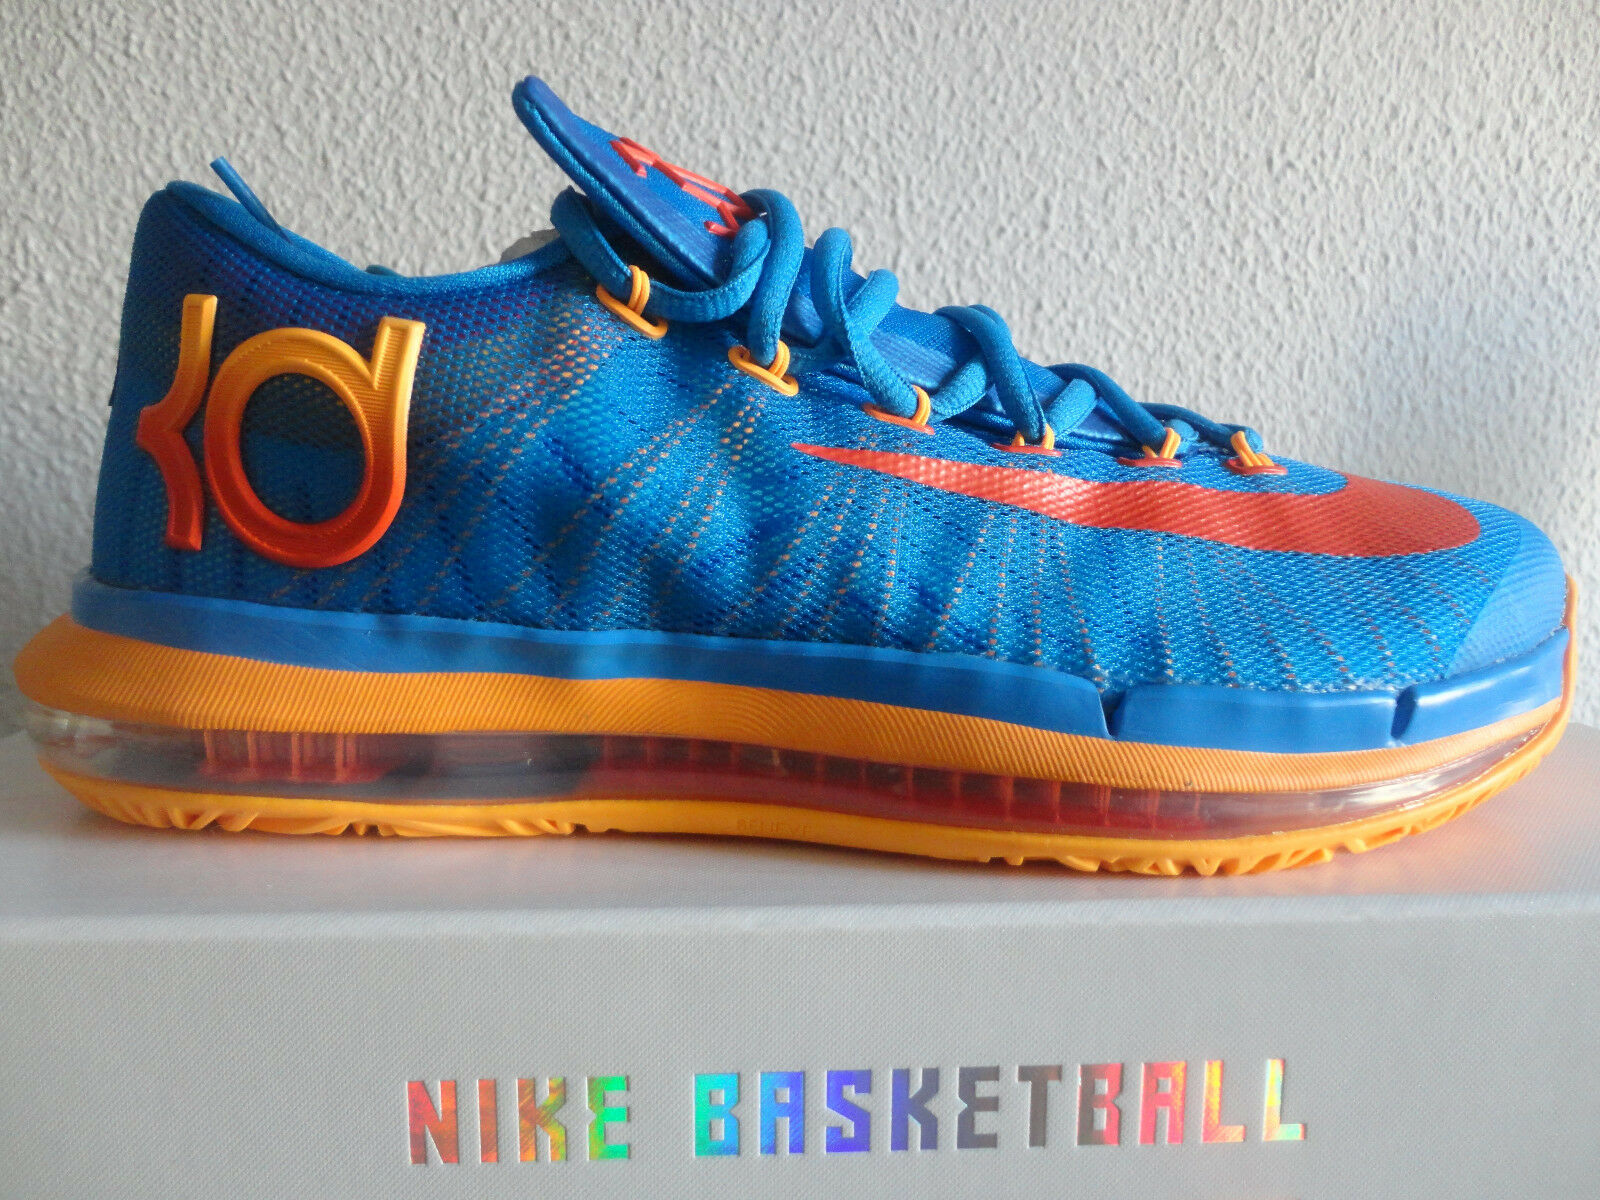 Nike Basketball KD VI Elite US8 UK7 PHT BL TM ORNG-ATMC 642838 400 Kevin Durant